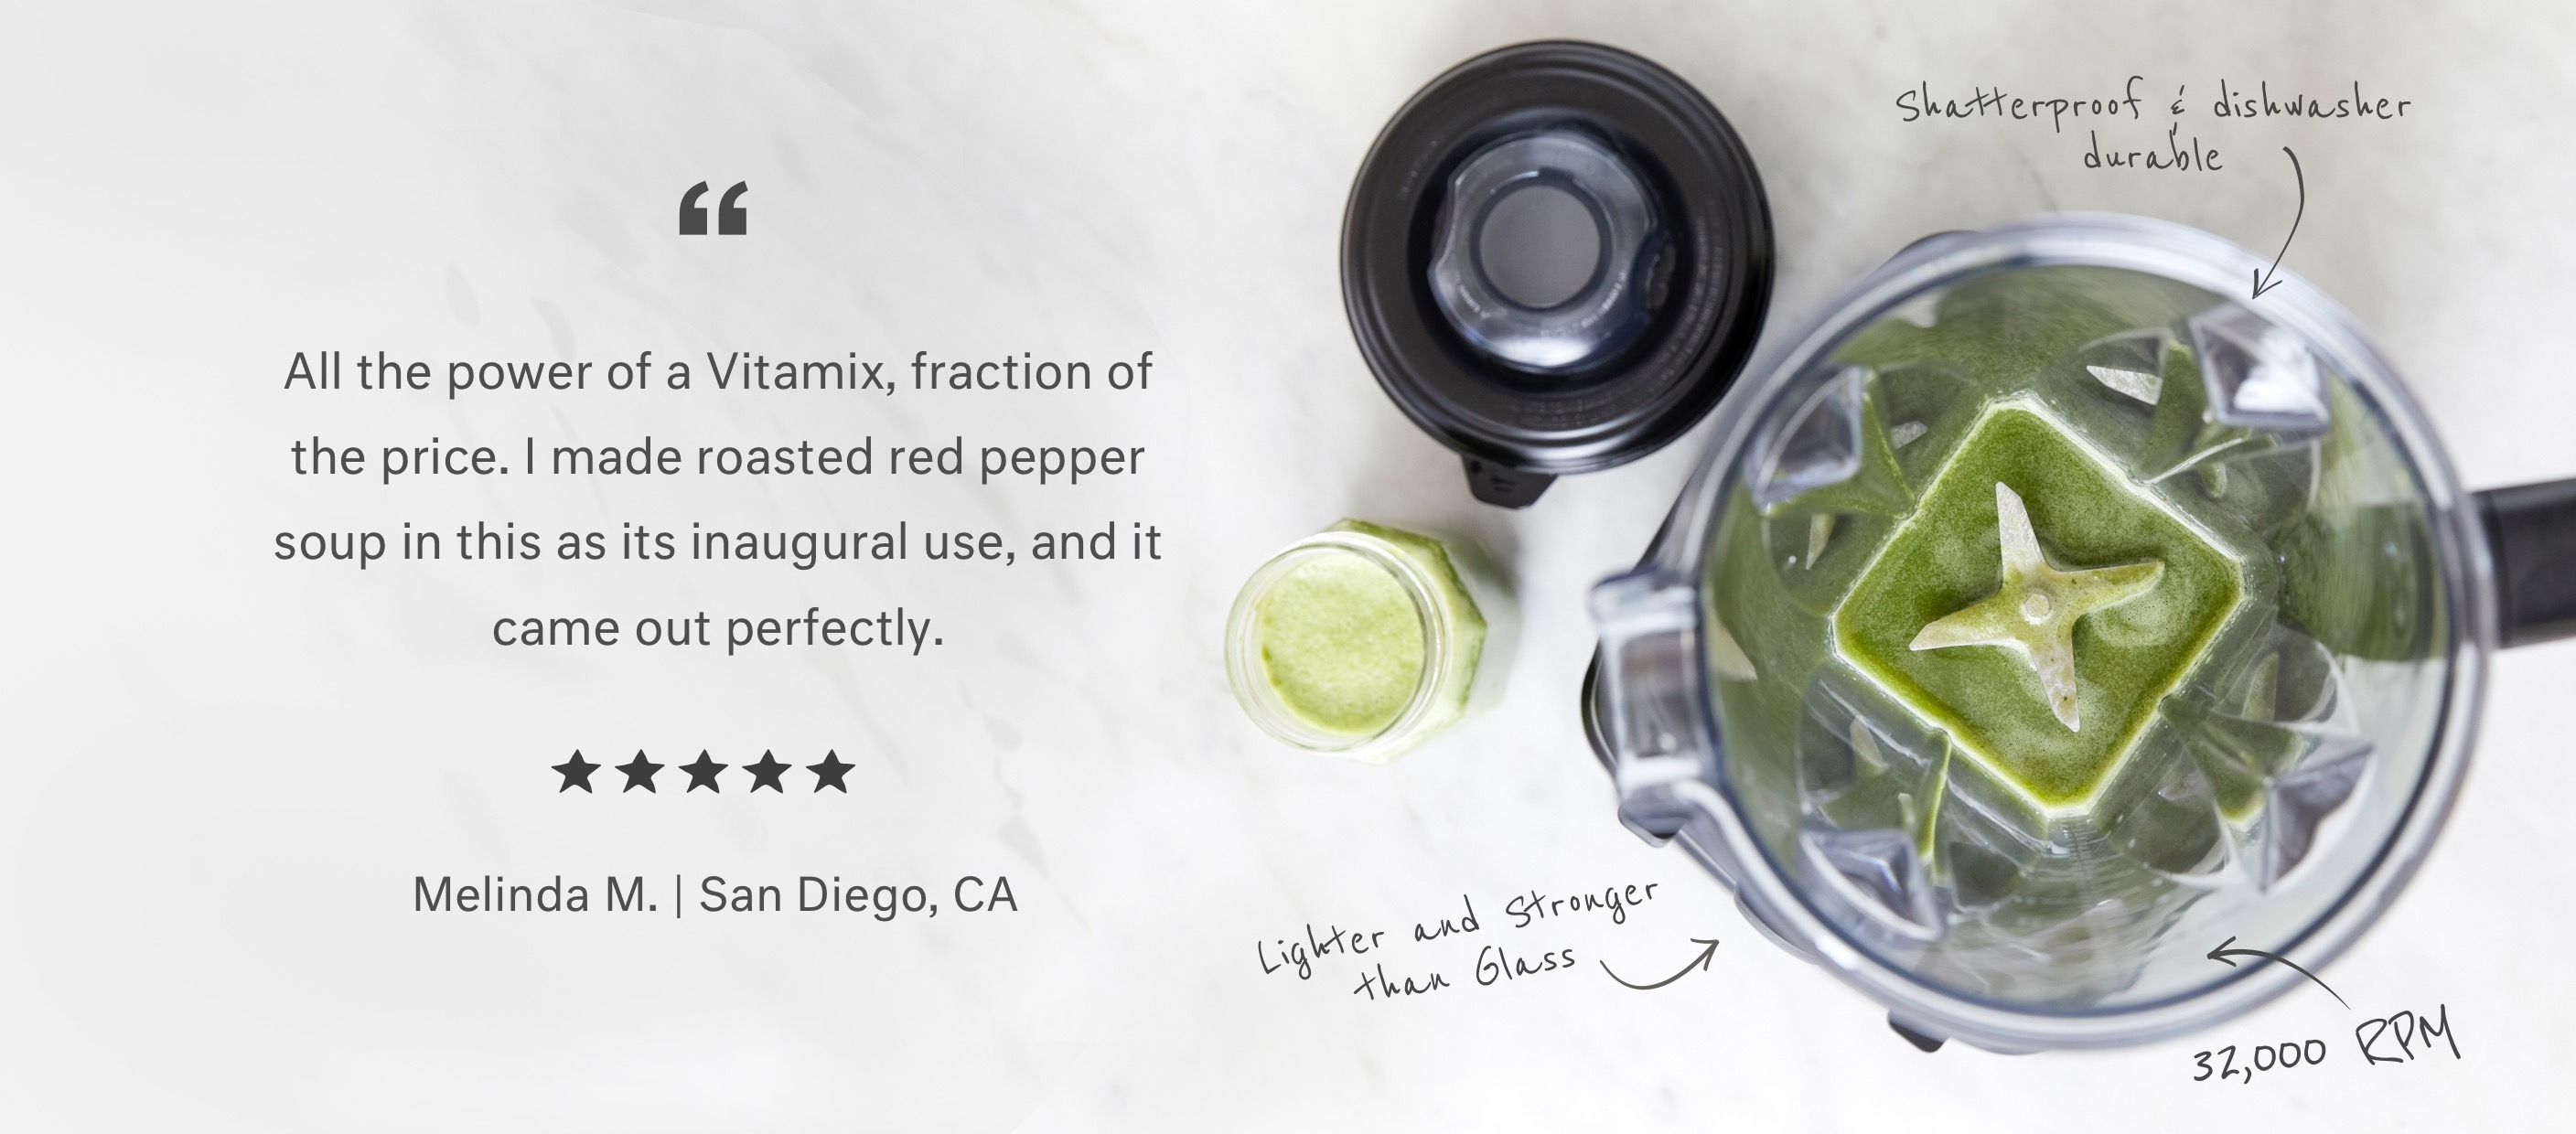 All the power of Vitamix, fraction of the price.